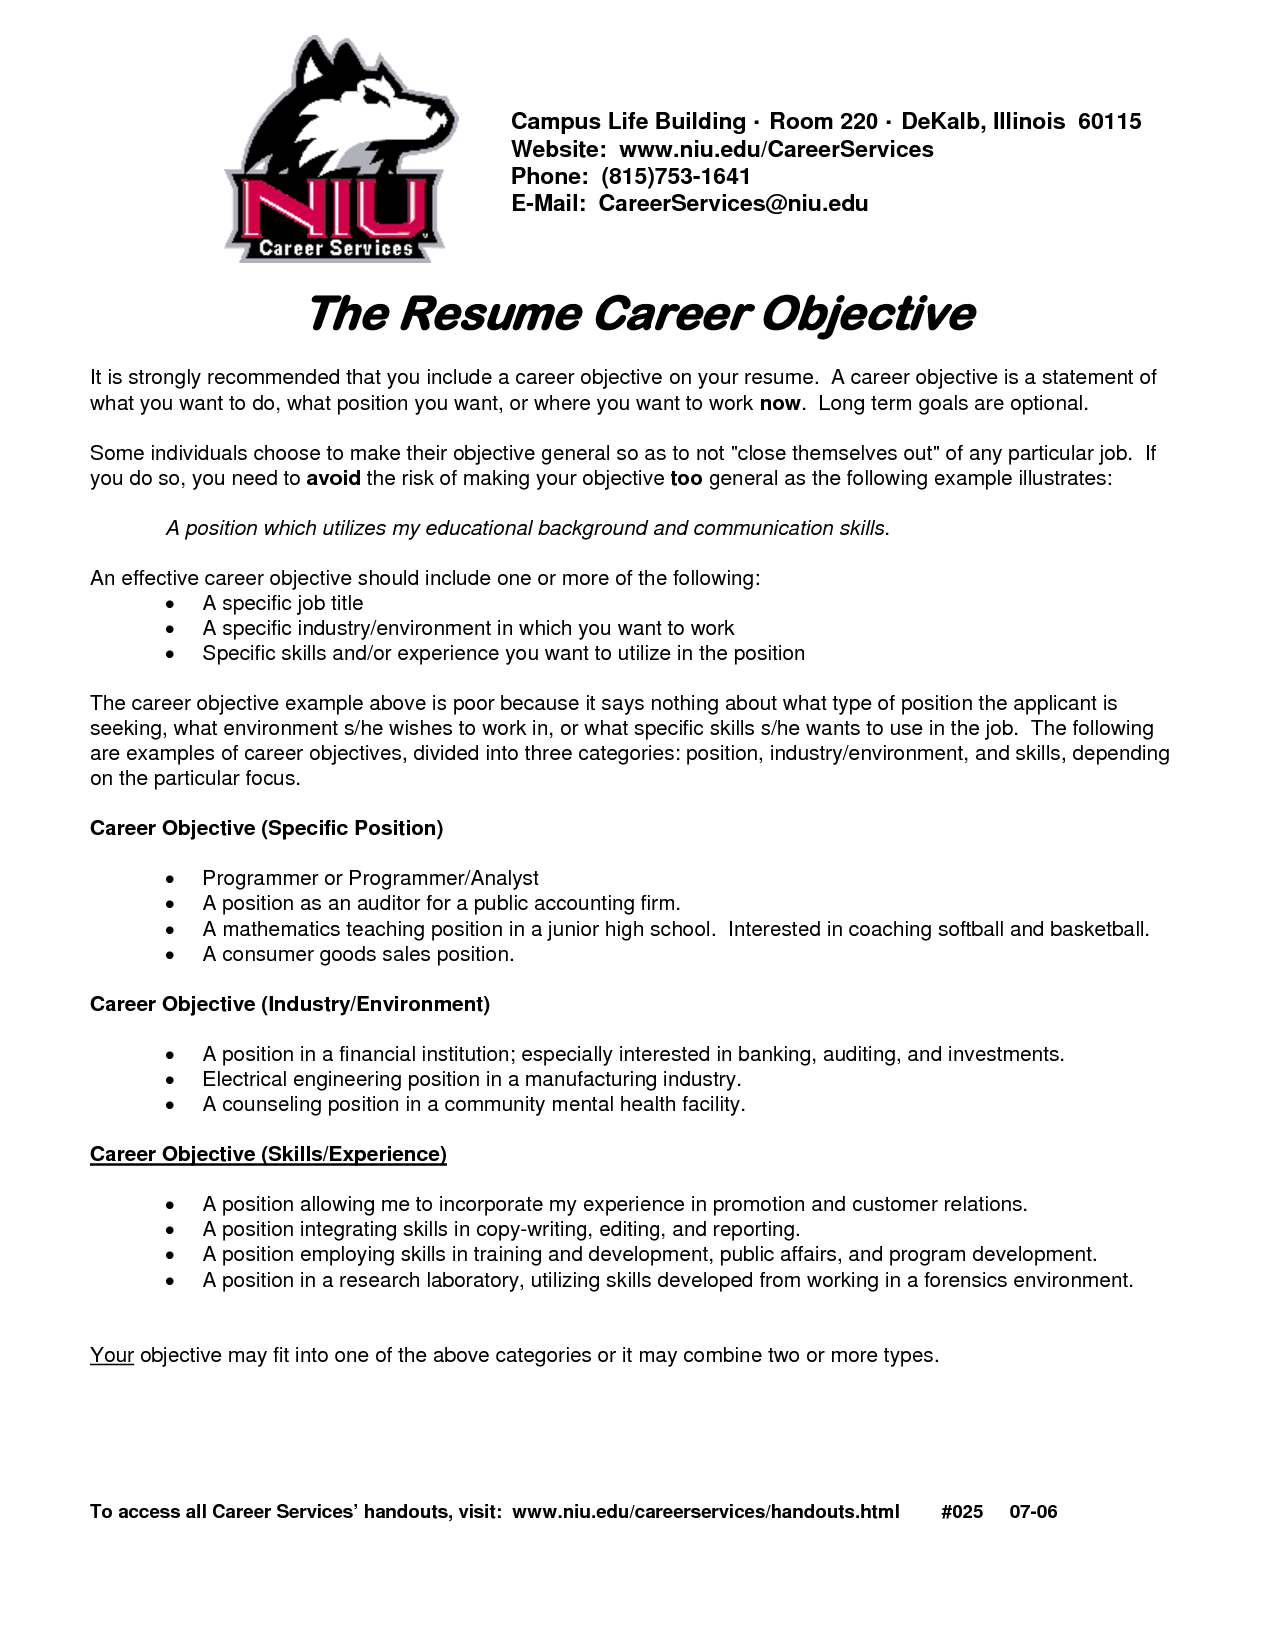 student sample resume for it professional - Resume Objectives For It Professionals